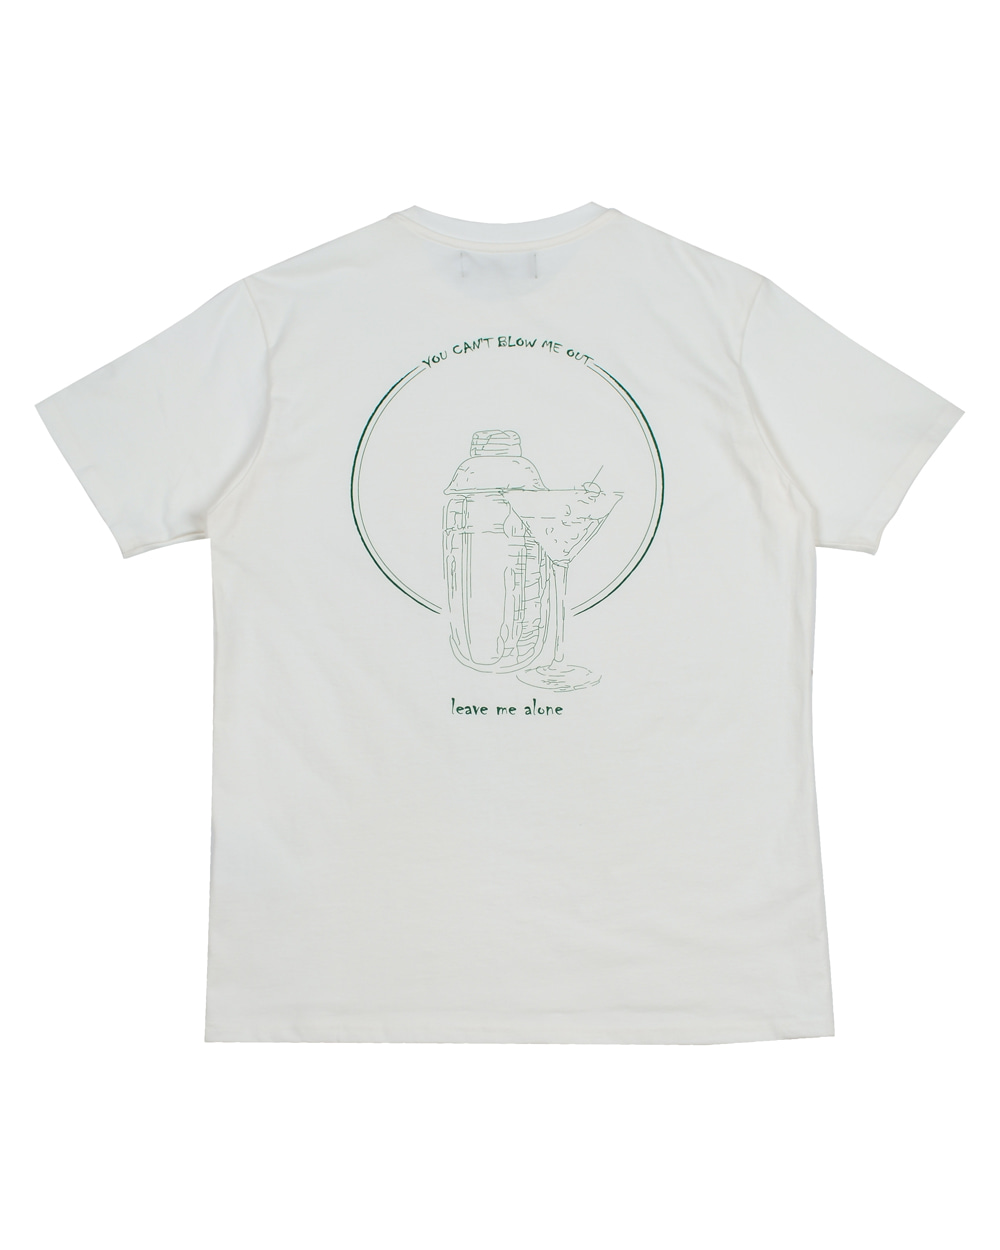 SHAKER T-SHIRT WHITEHey Martini(헤이마르티니)